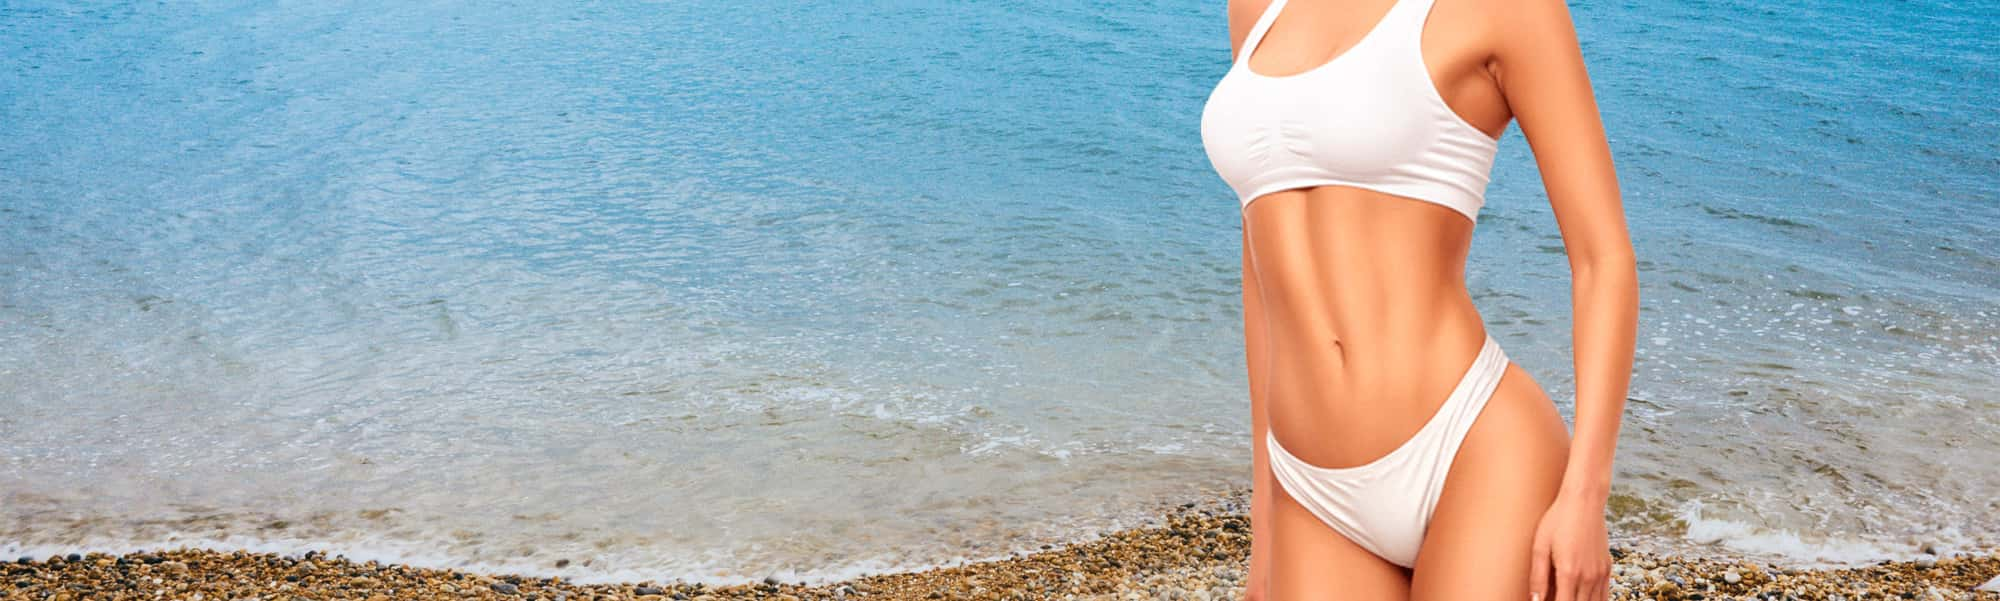 tummy tuck surgery cost in delhi